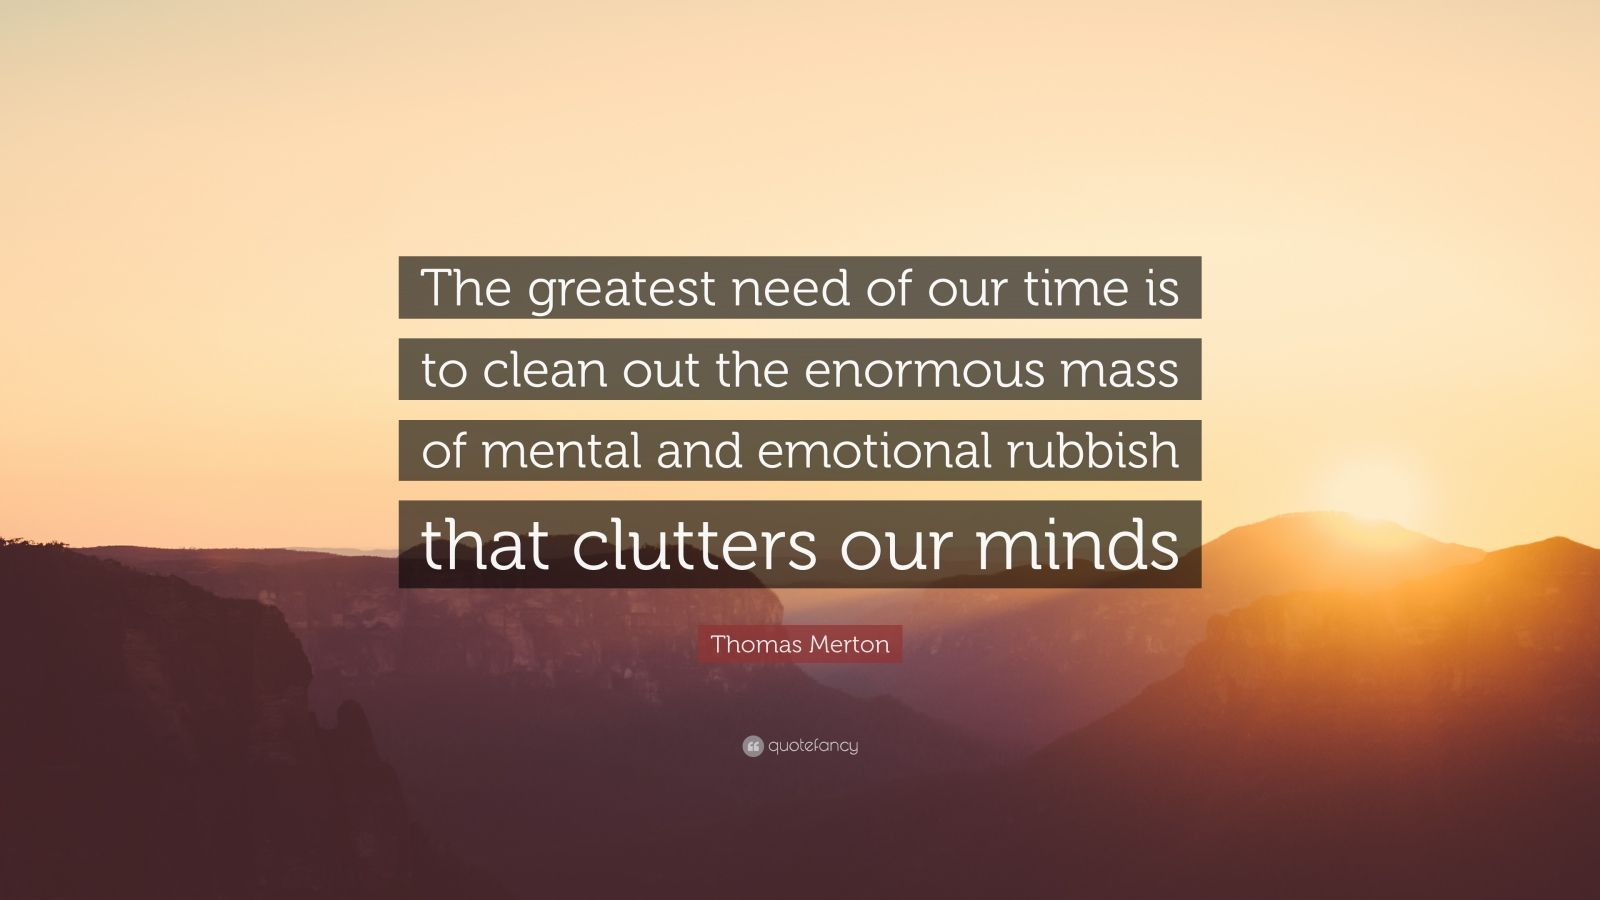 """Thomas Merton Quote: """"The greatest need of our time is to clean out the enormous mass of mental and emotional rubbish that clutters our minds"""""""